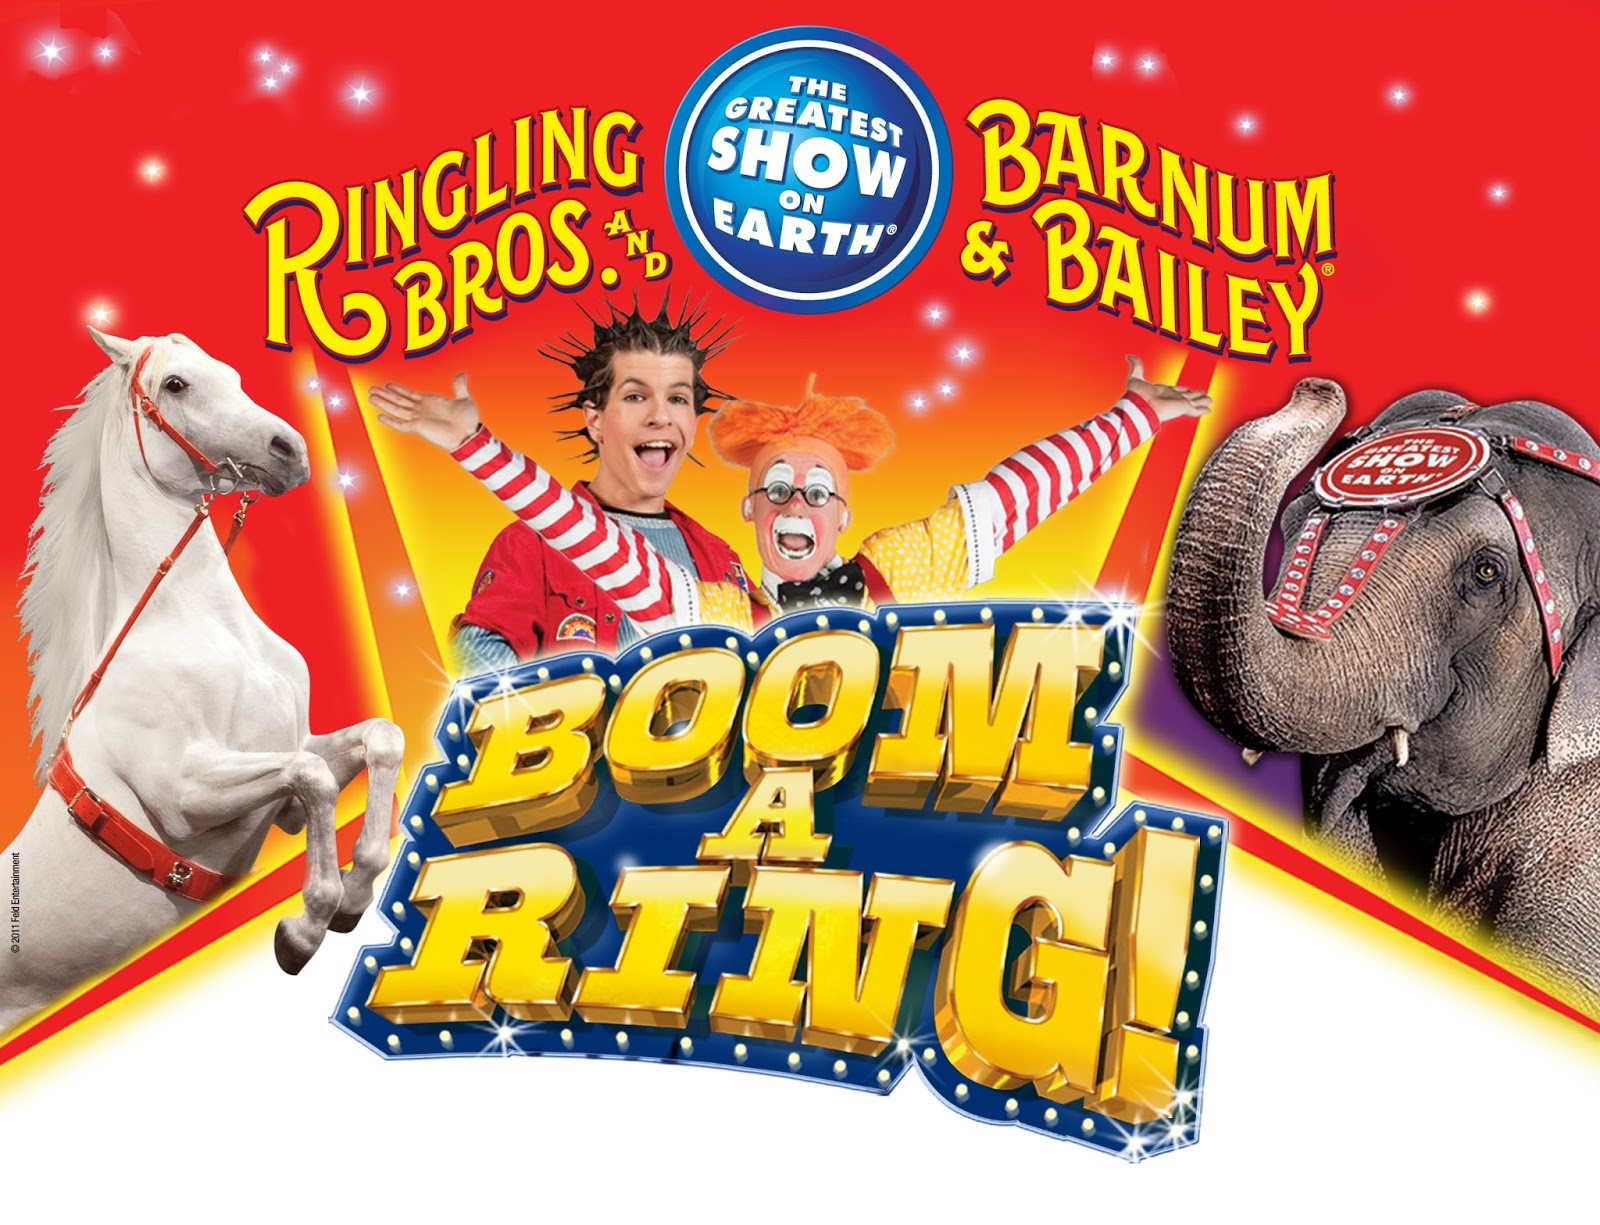 If you are seeking for fun performances with animals and clowns, you can come to Cow Palace in San Francisco to contemplate the Ringling Brothers Barnum & Bailey Circus.